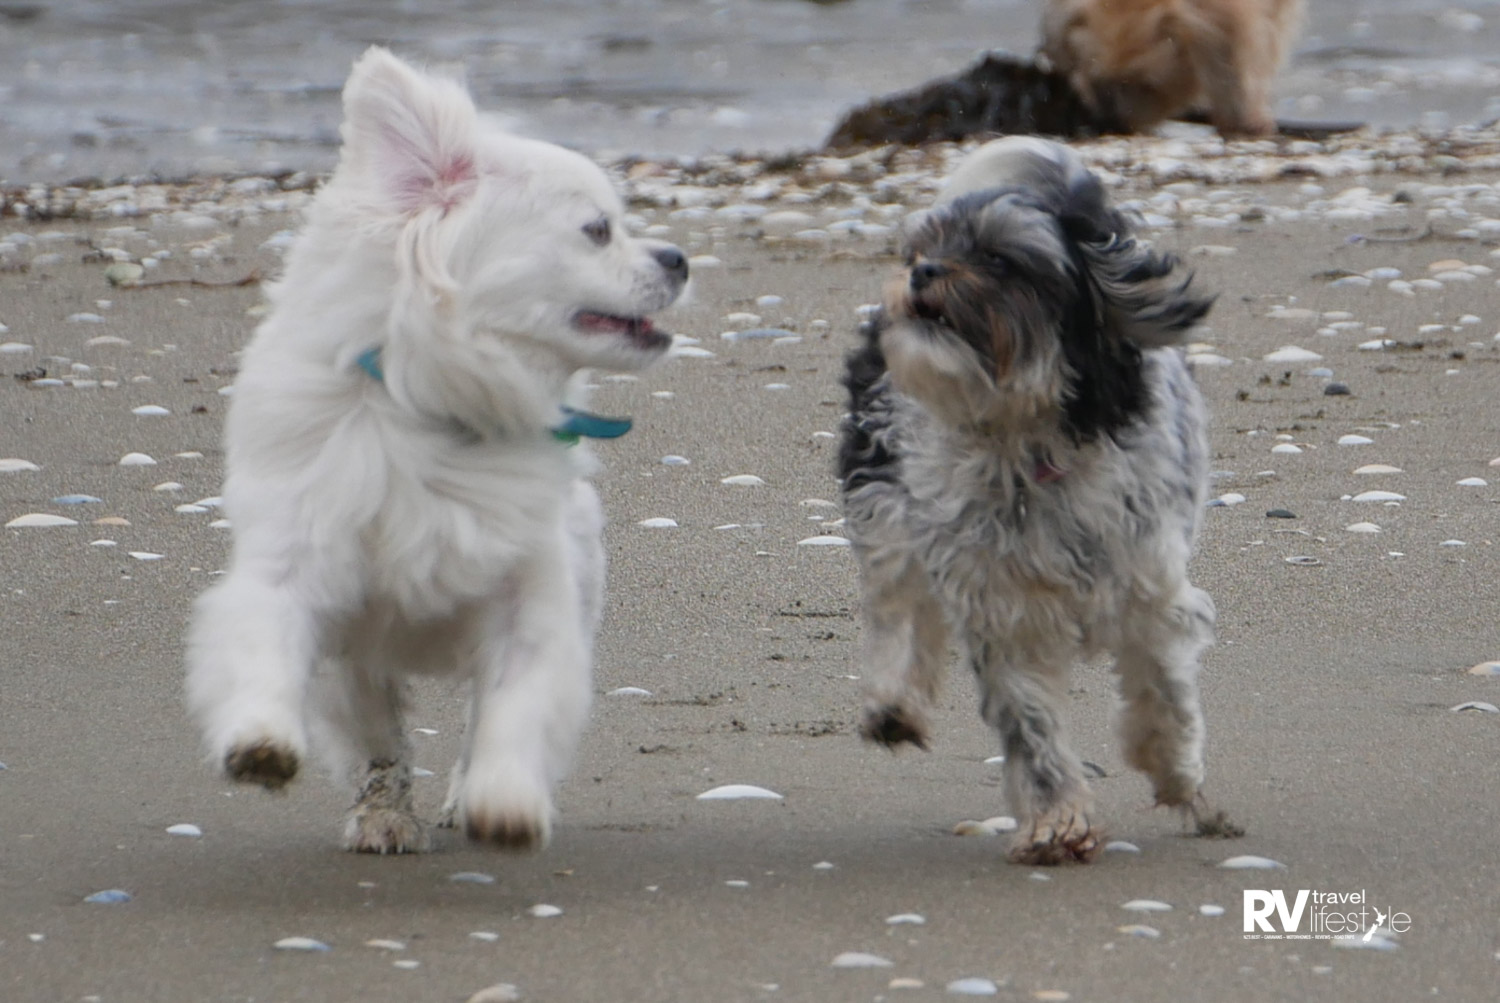 Caspar and Lox having a great time together on the beach